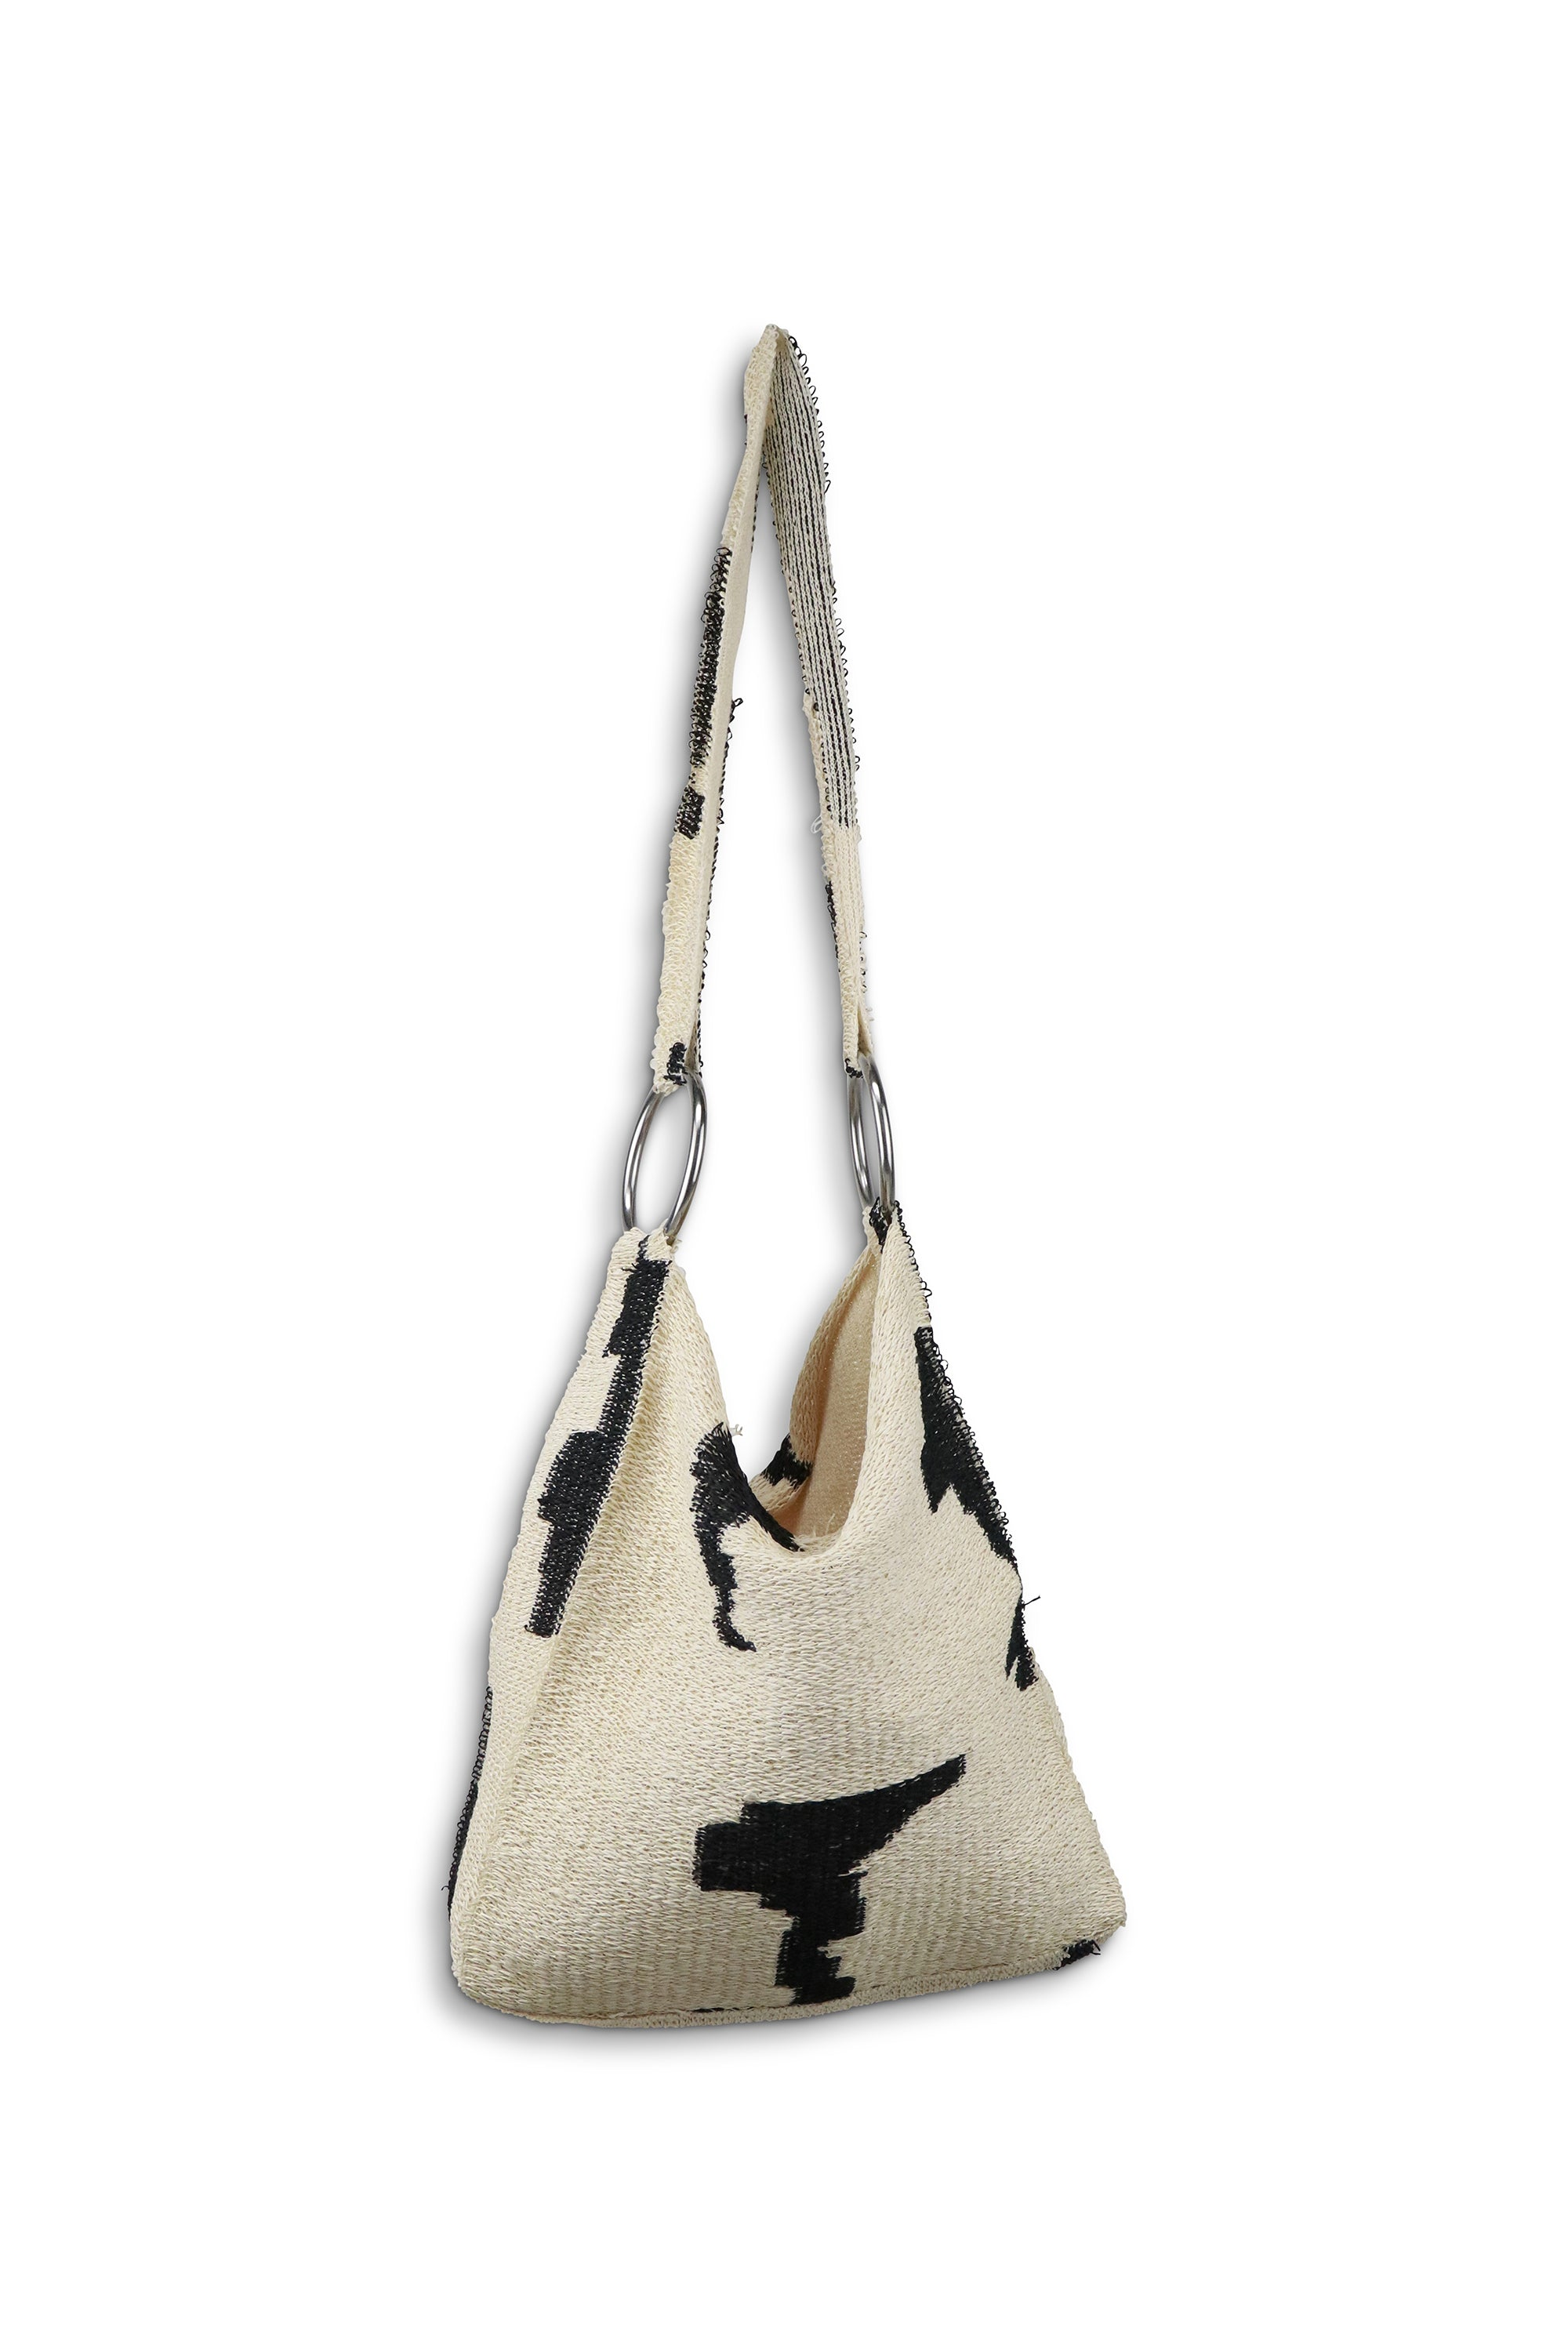 Patterned Raffia Bag